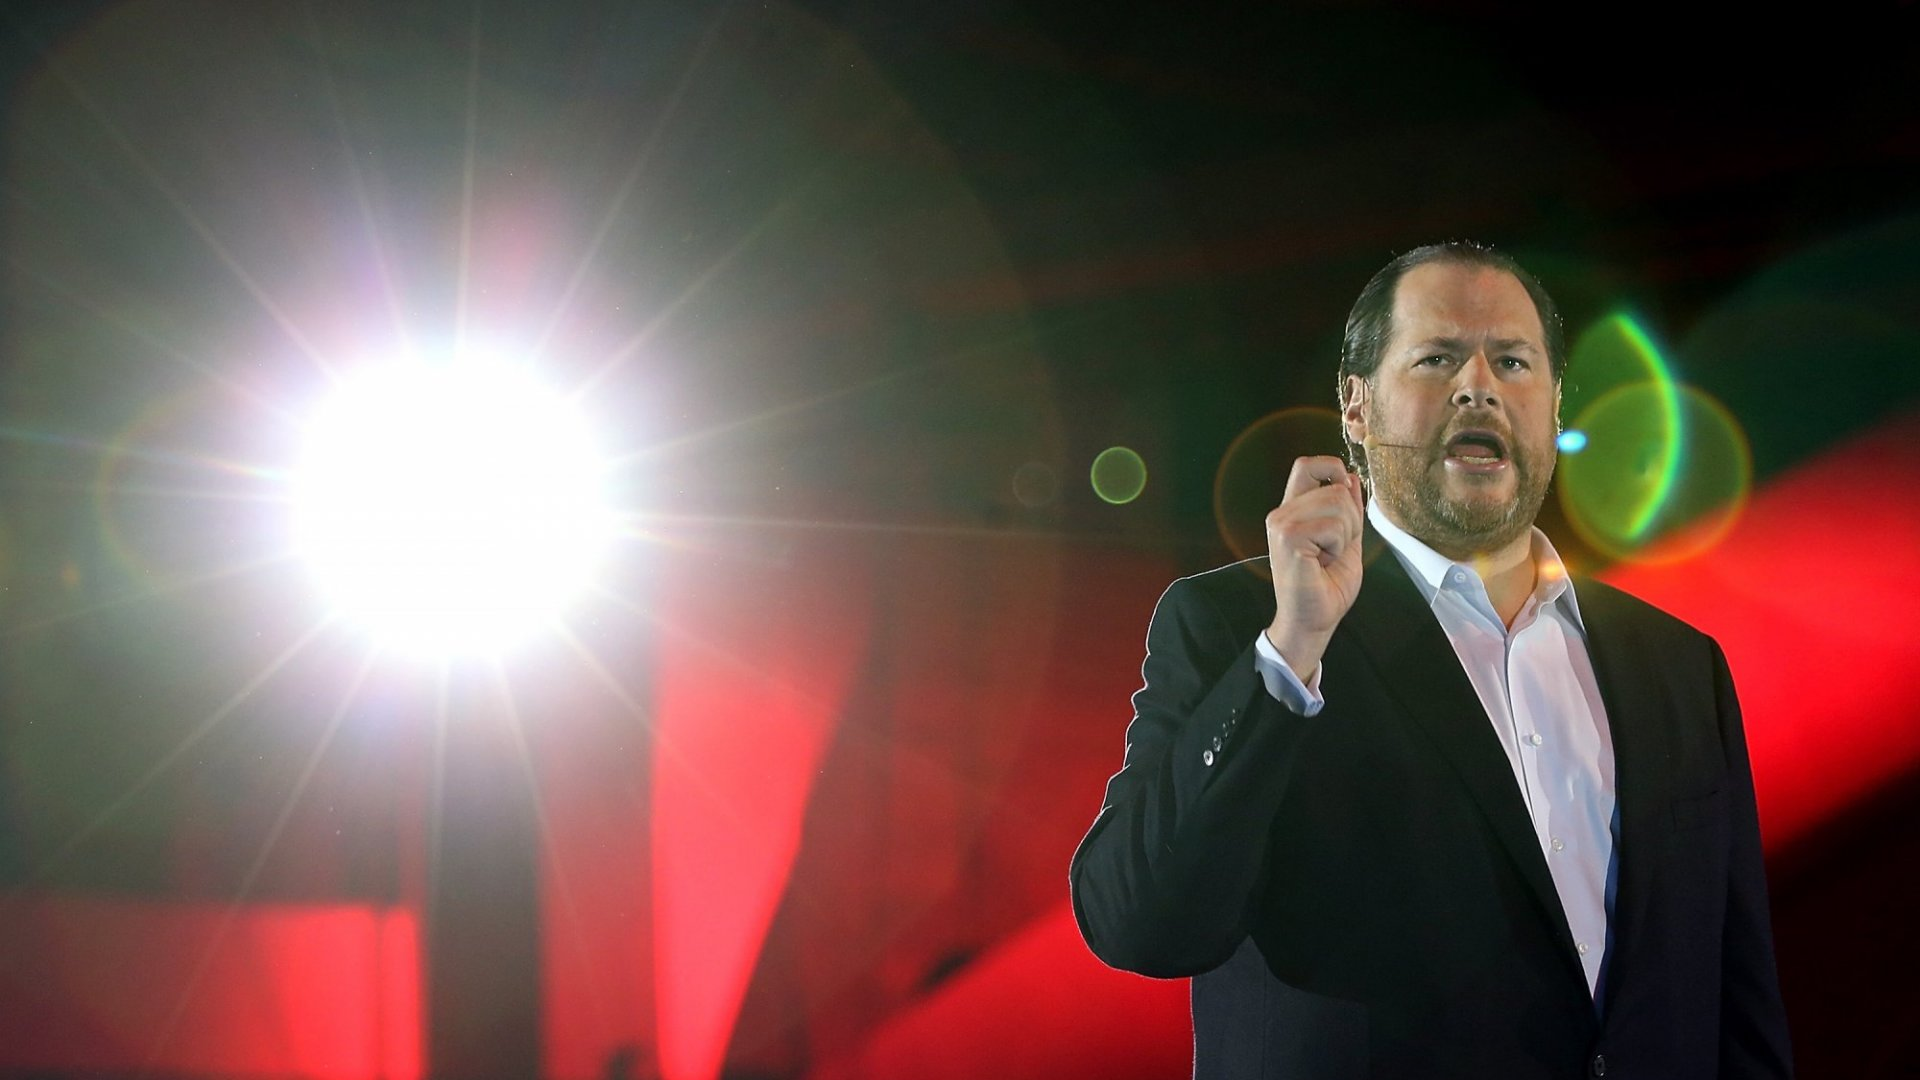 How Salesforce CEO Marc Benioff Is Taking a Stand Against Georgia's 'Religious Freedom' Bill